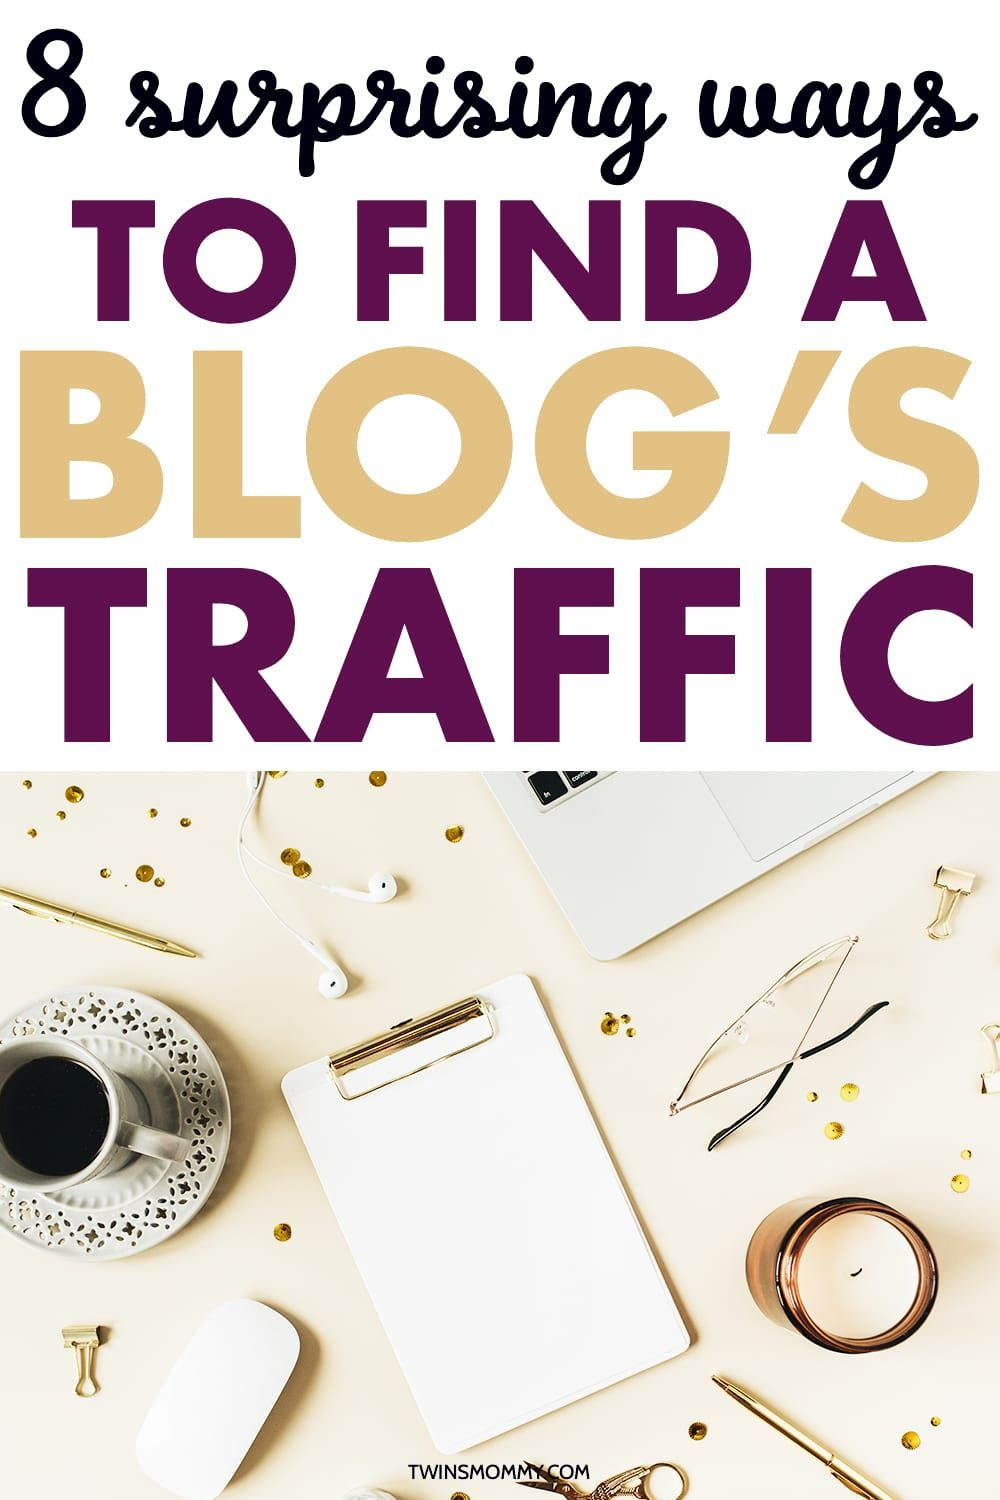 8 Surprising Ways to Find Out How Much Traffic a Website